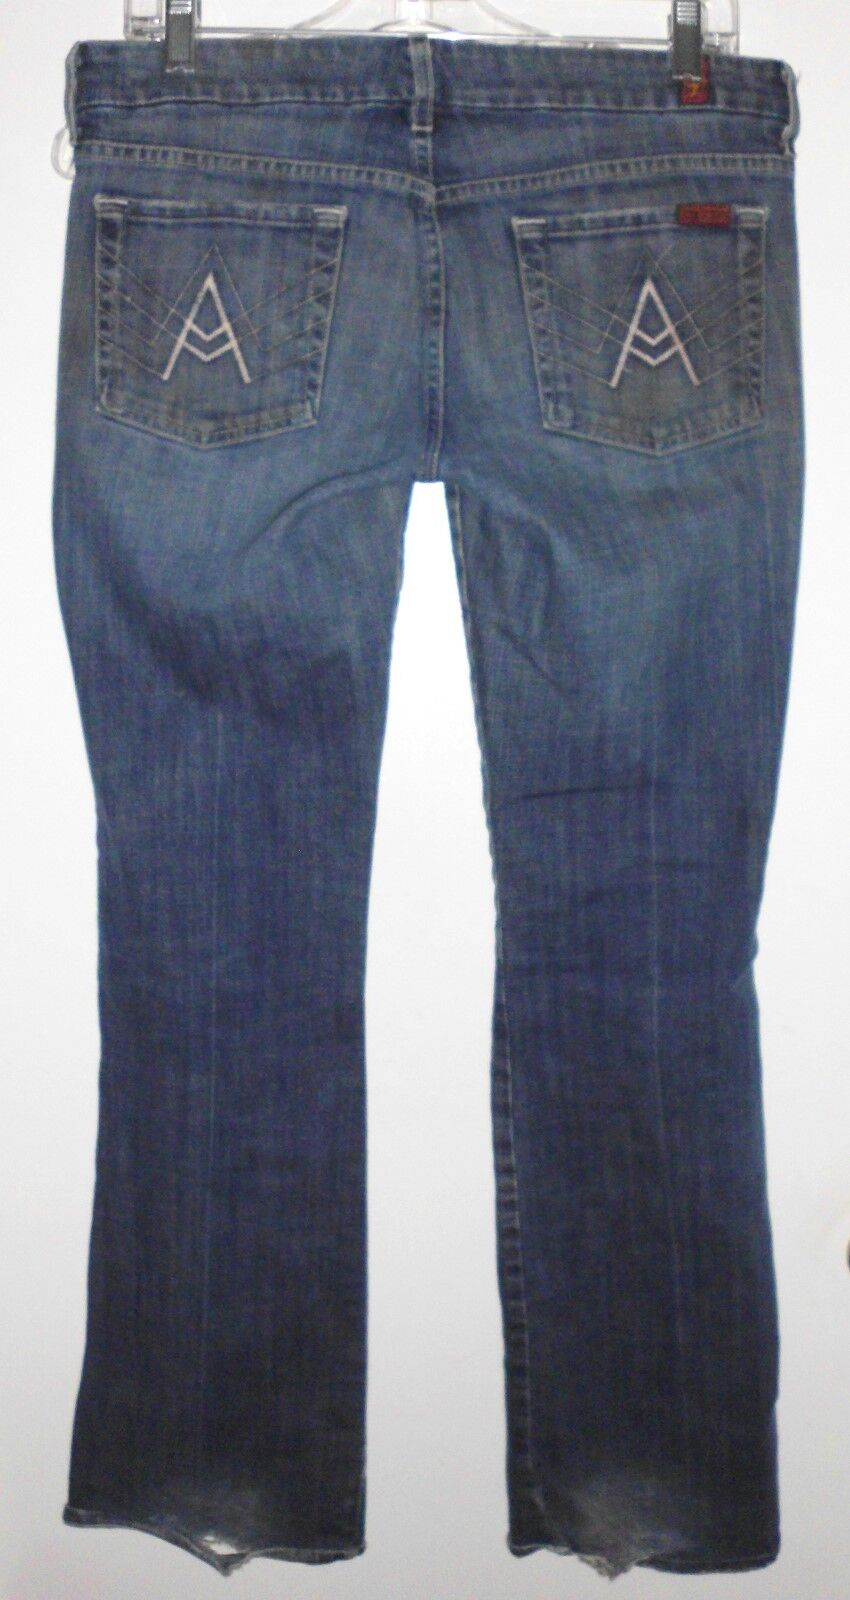 7 FOR ALL MANKIND Jeans Sz 30 Men's Distressed Lowrise Stretch Boot Cut bluee